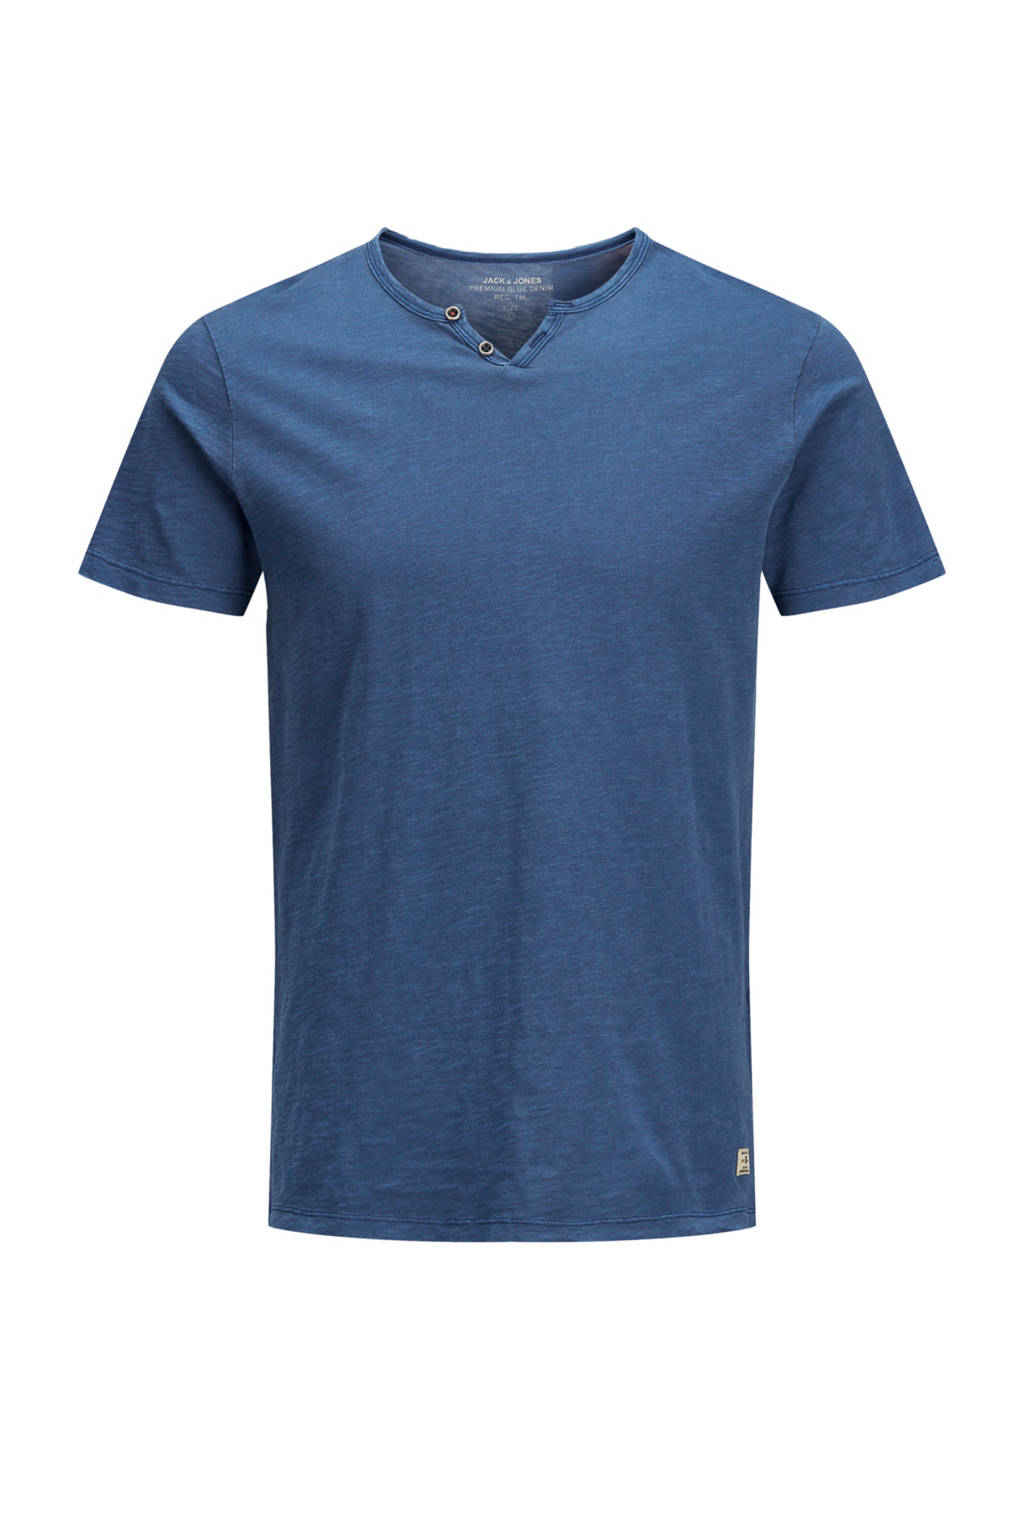 Jack & Jones Premium T-shirt, Blauw